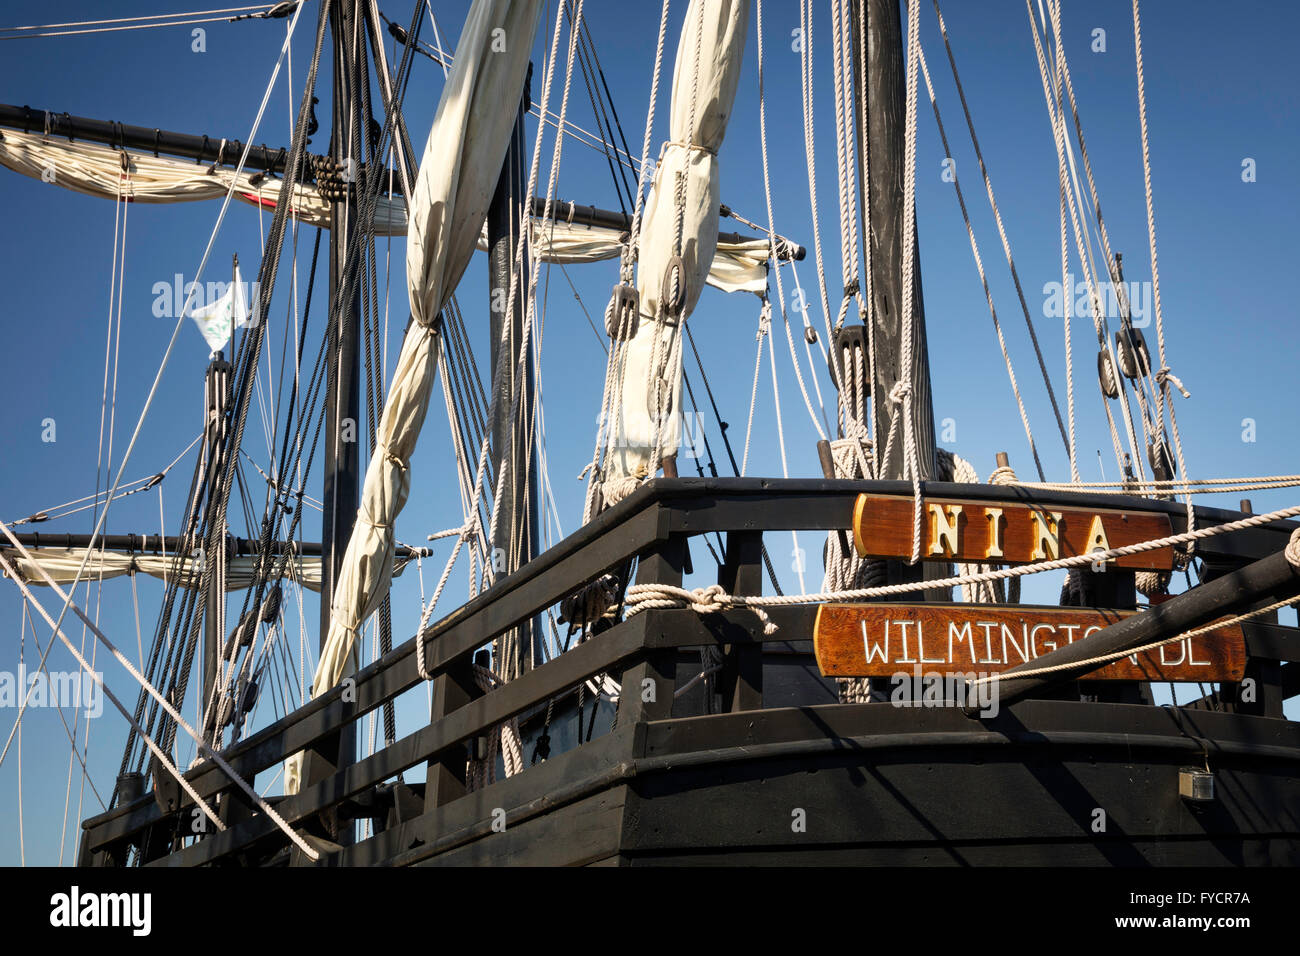 Replicas of Christopher Columbus' ships, Nina and Pinta docked in Ft. Myers, Florida, USA - Stock Image